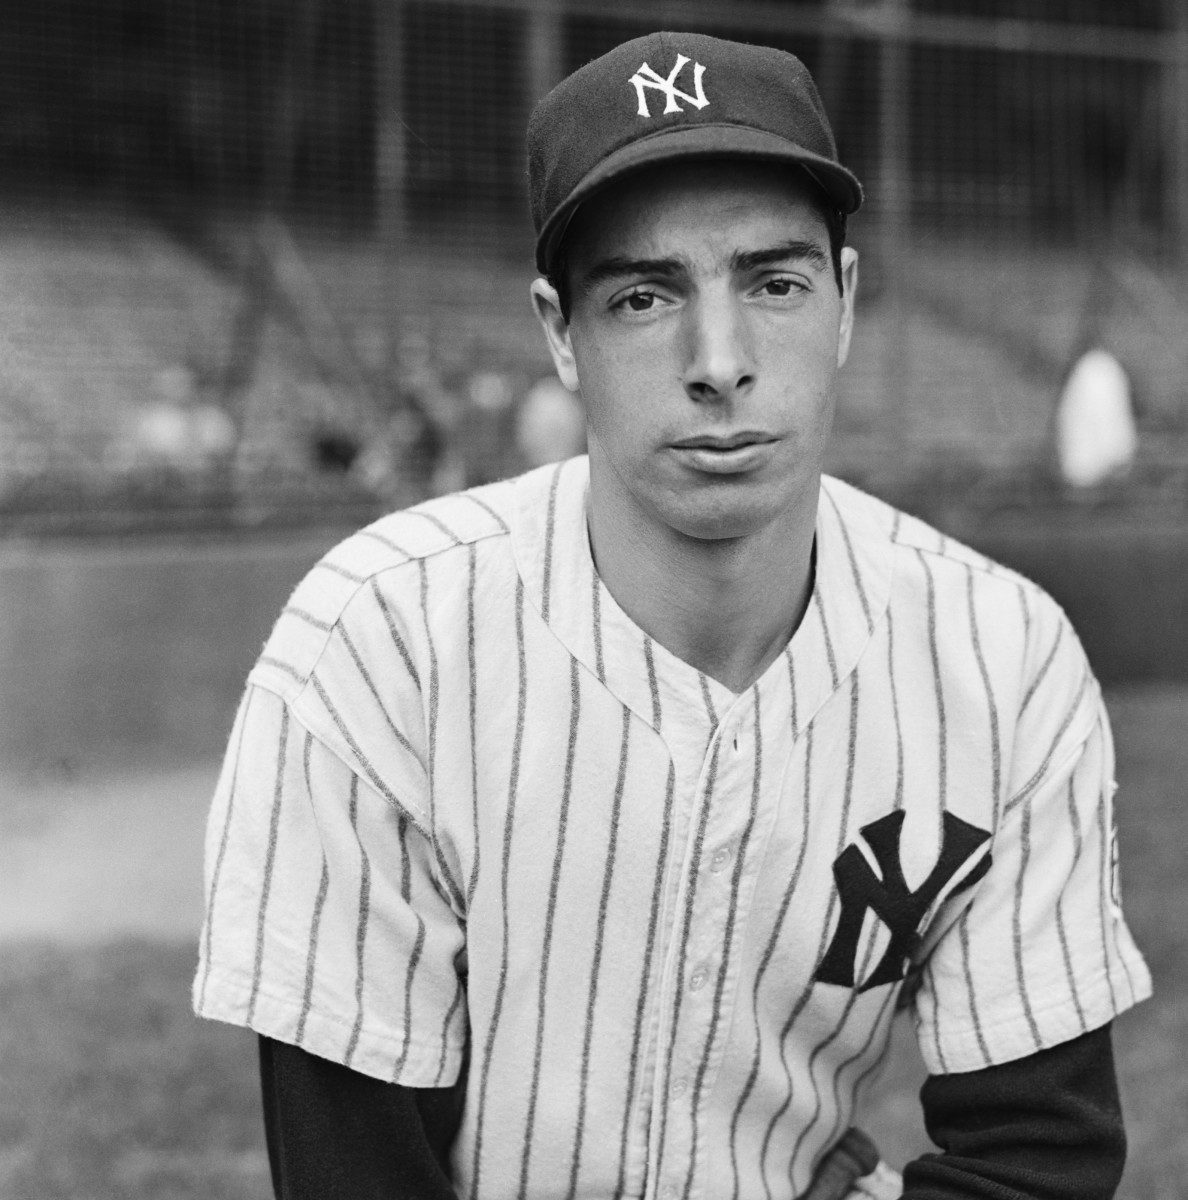 """Joe DiMaggio after the Yankees clinched the 1942 American League pennant. Early in his career, DiMaggio was known as """"Dead-Pan Joe."""""""